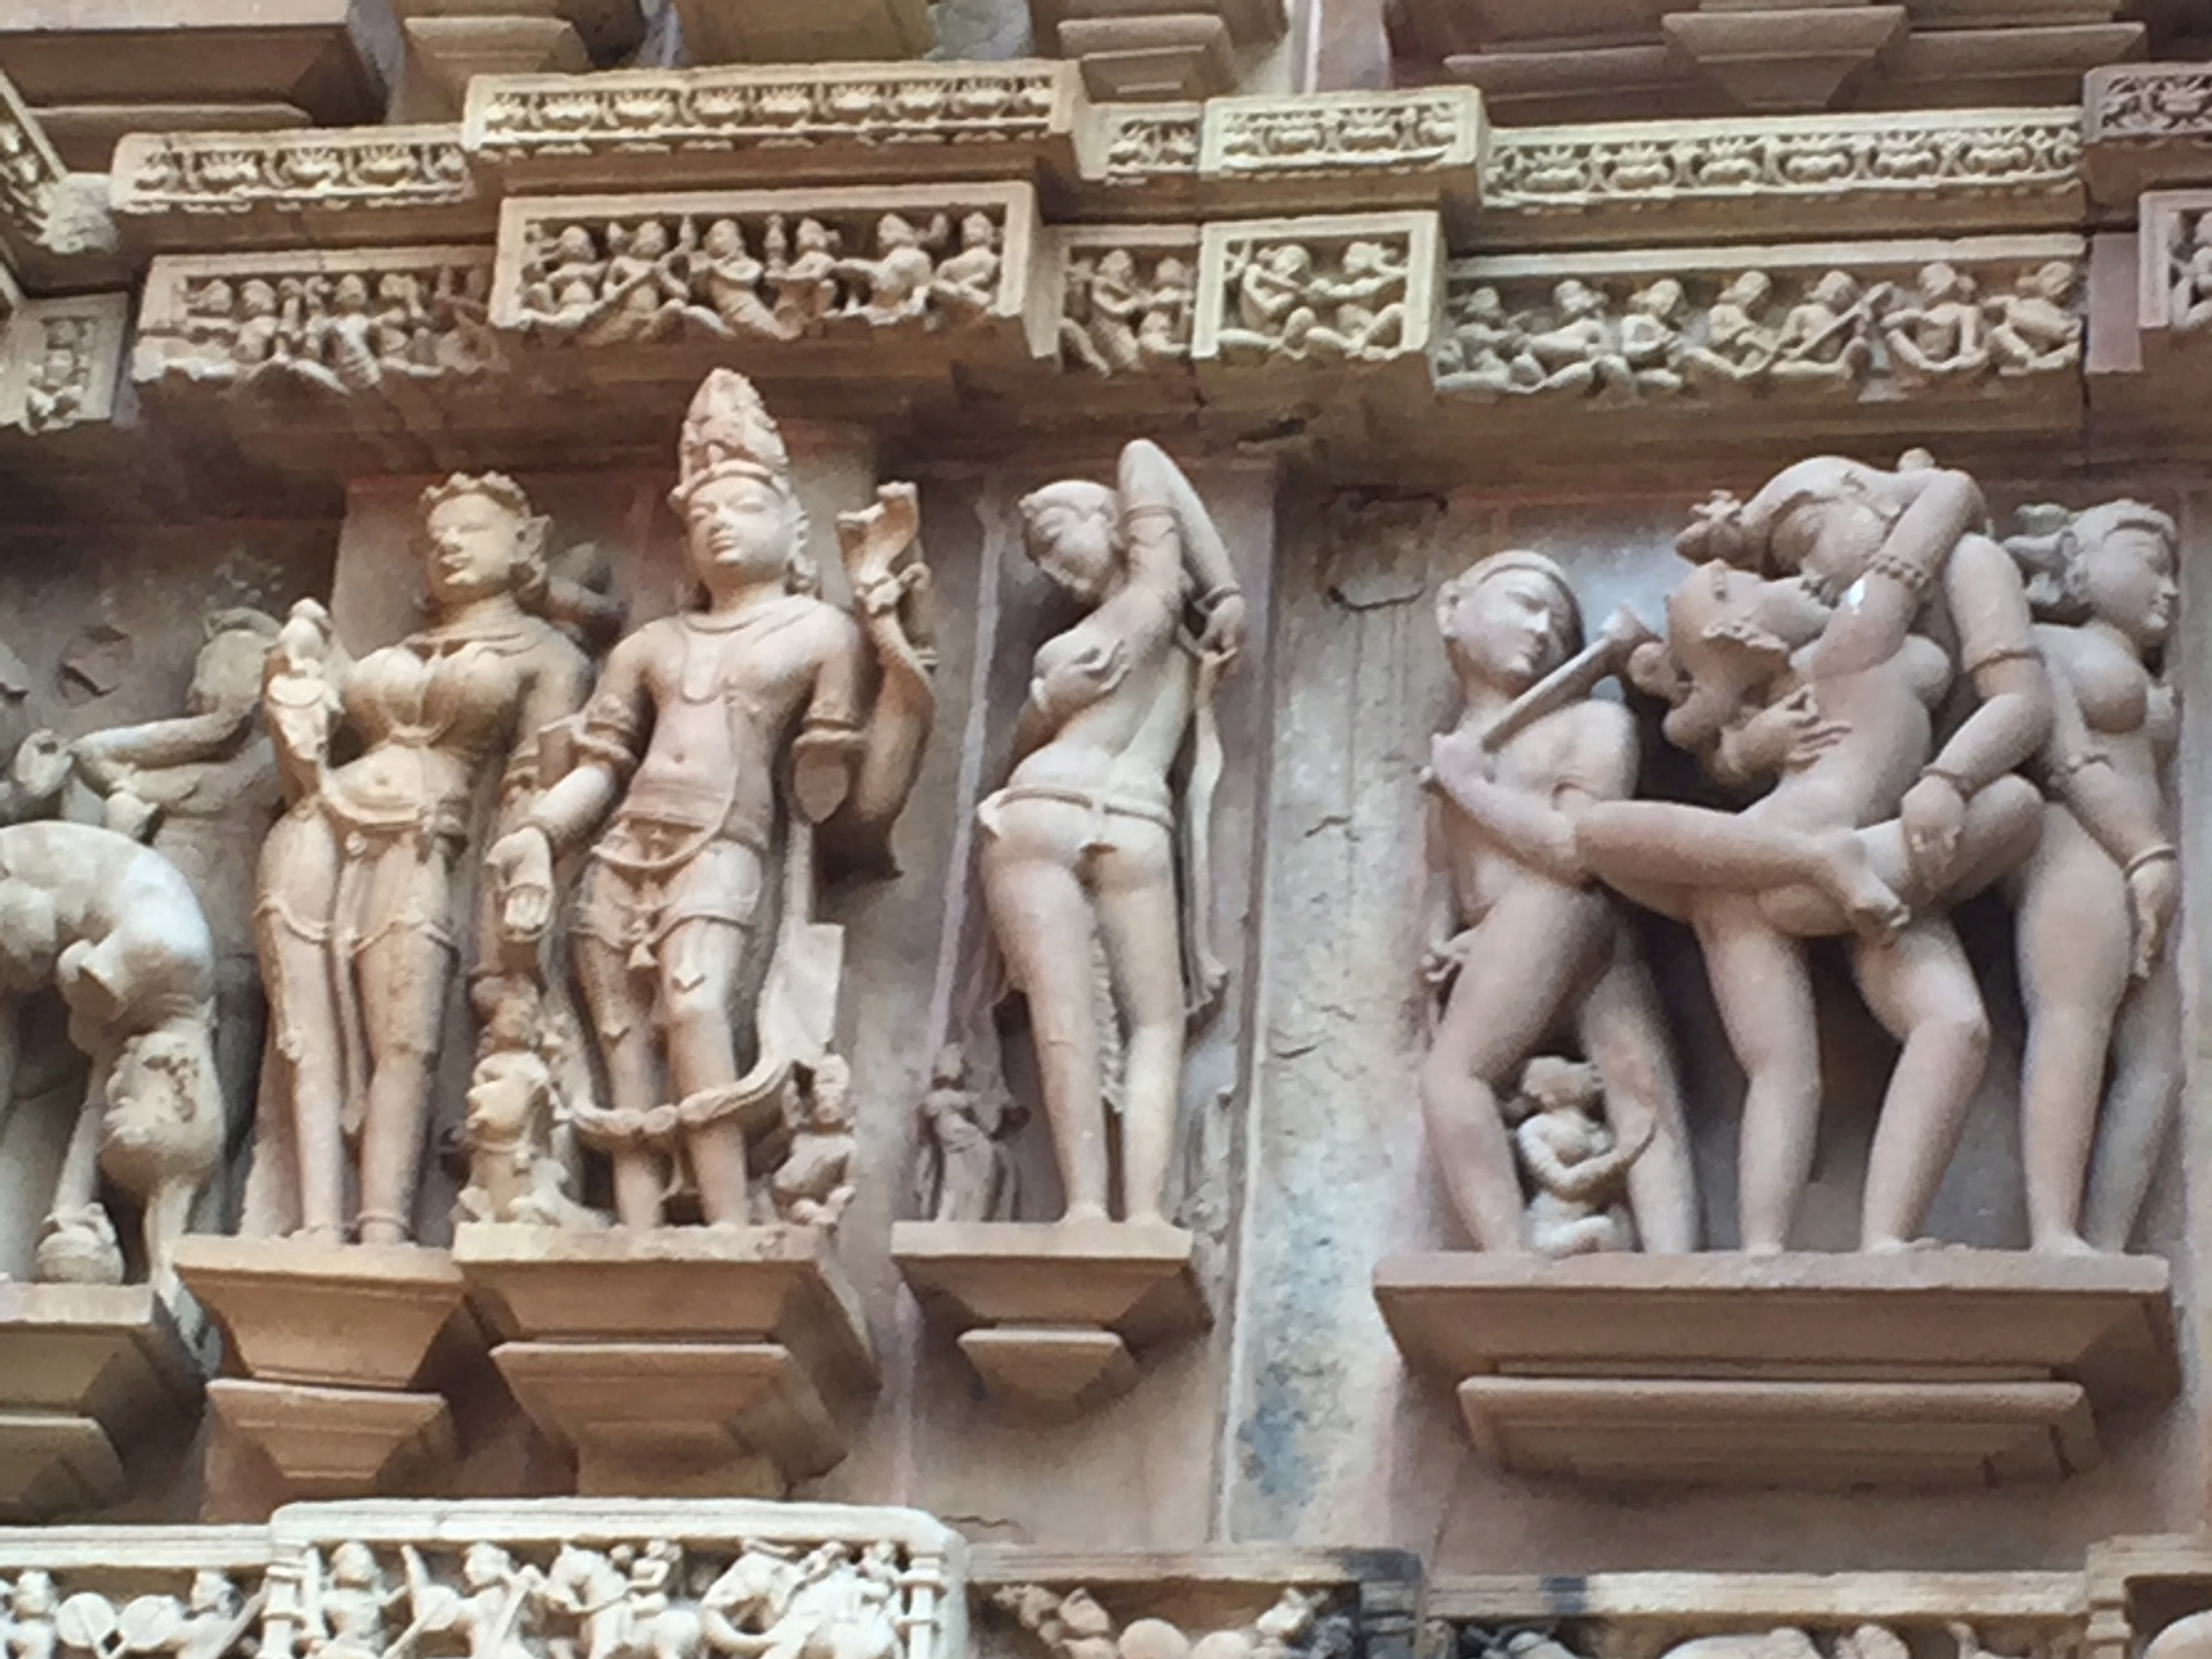 Relief carvings, including erotic art, on the walls of the Khajuraho Group of Temples in north central India.